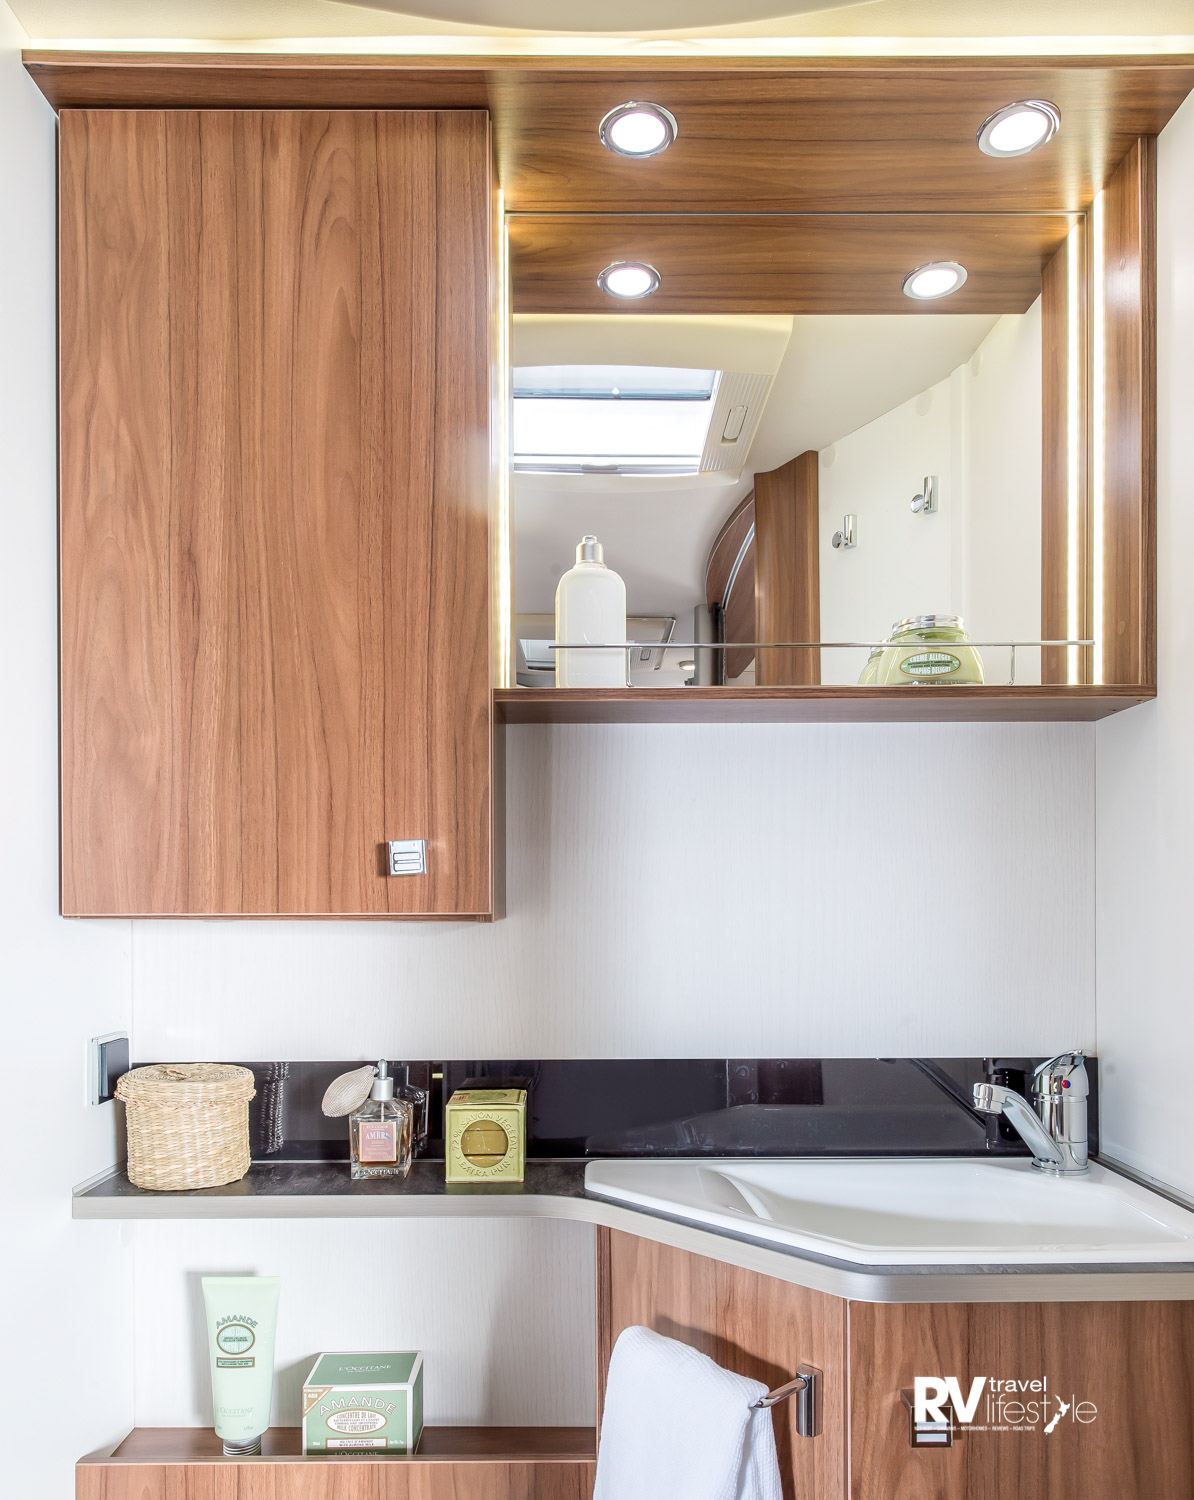 Separate bathroom and en suite toilet area - lots of storage, lighting, ventilation, and extra soap, towels and other fixtures are great